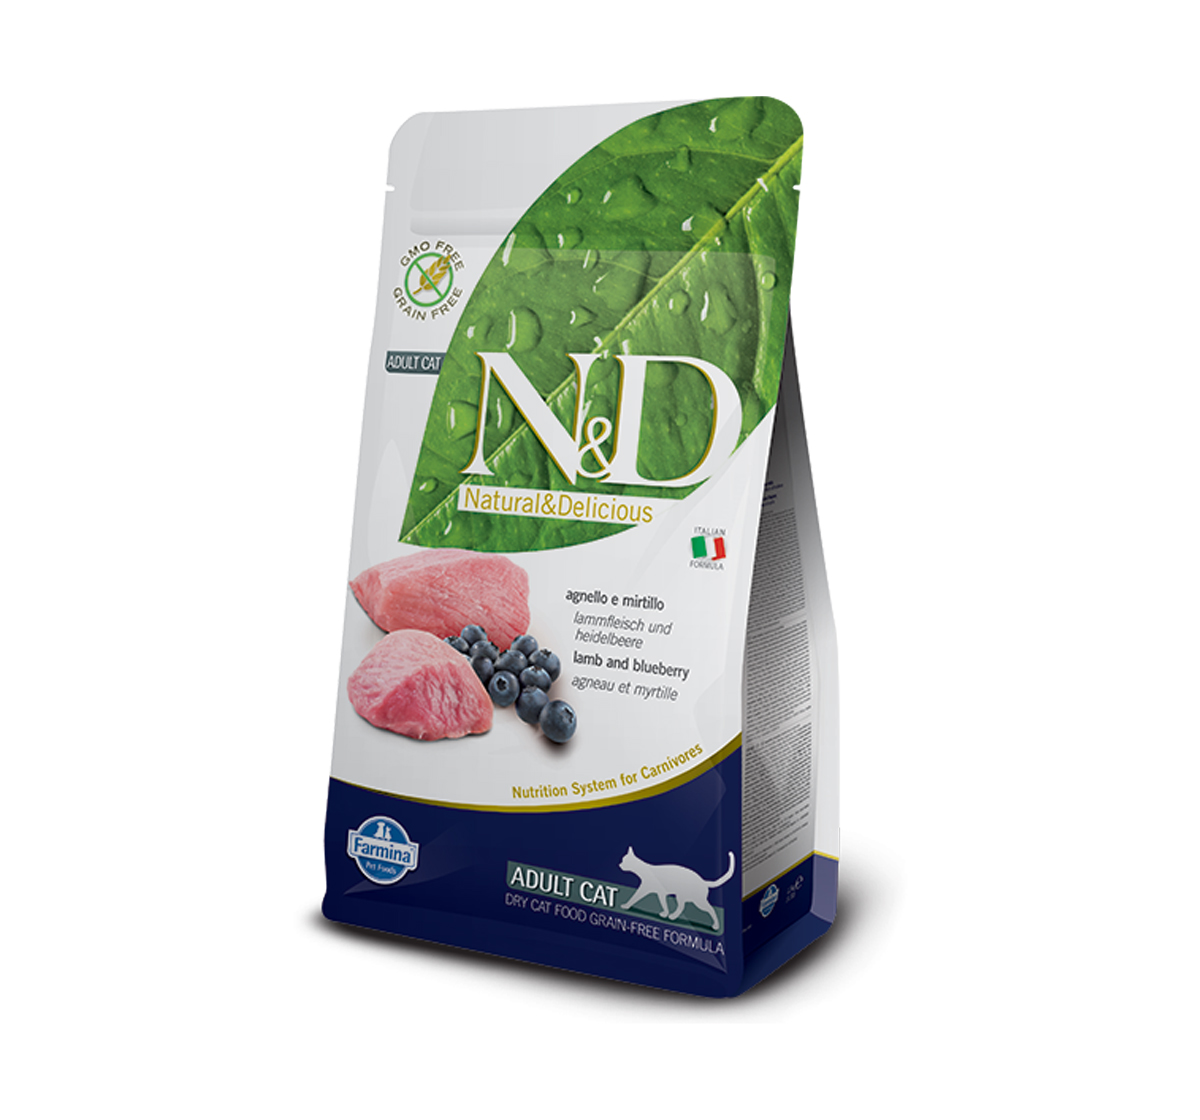 Natural & Delicious Grain Free Lamb & Blueberry Adult Cat - 1.5 Kg